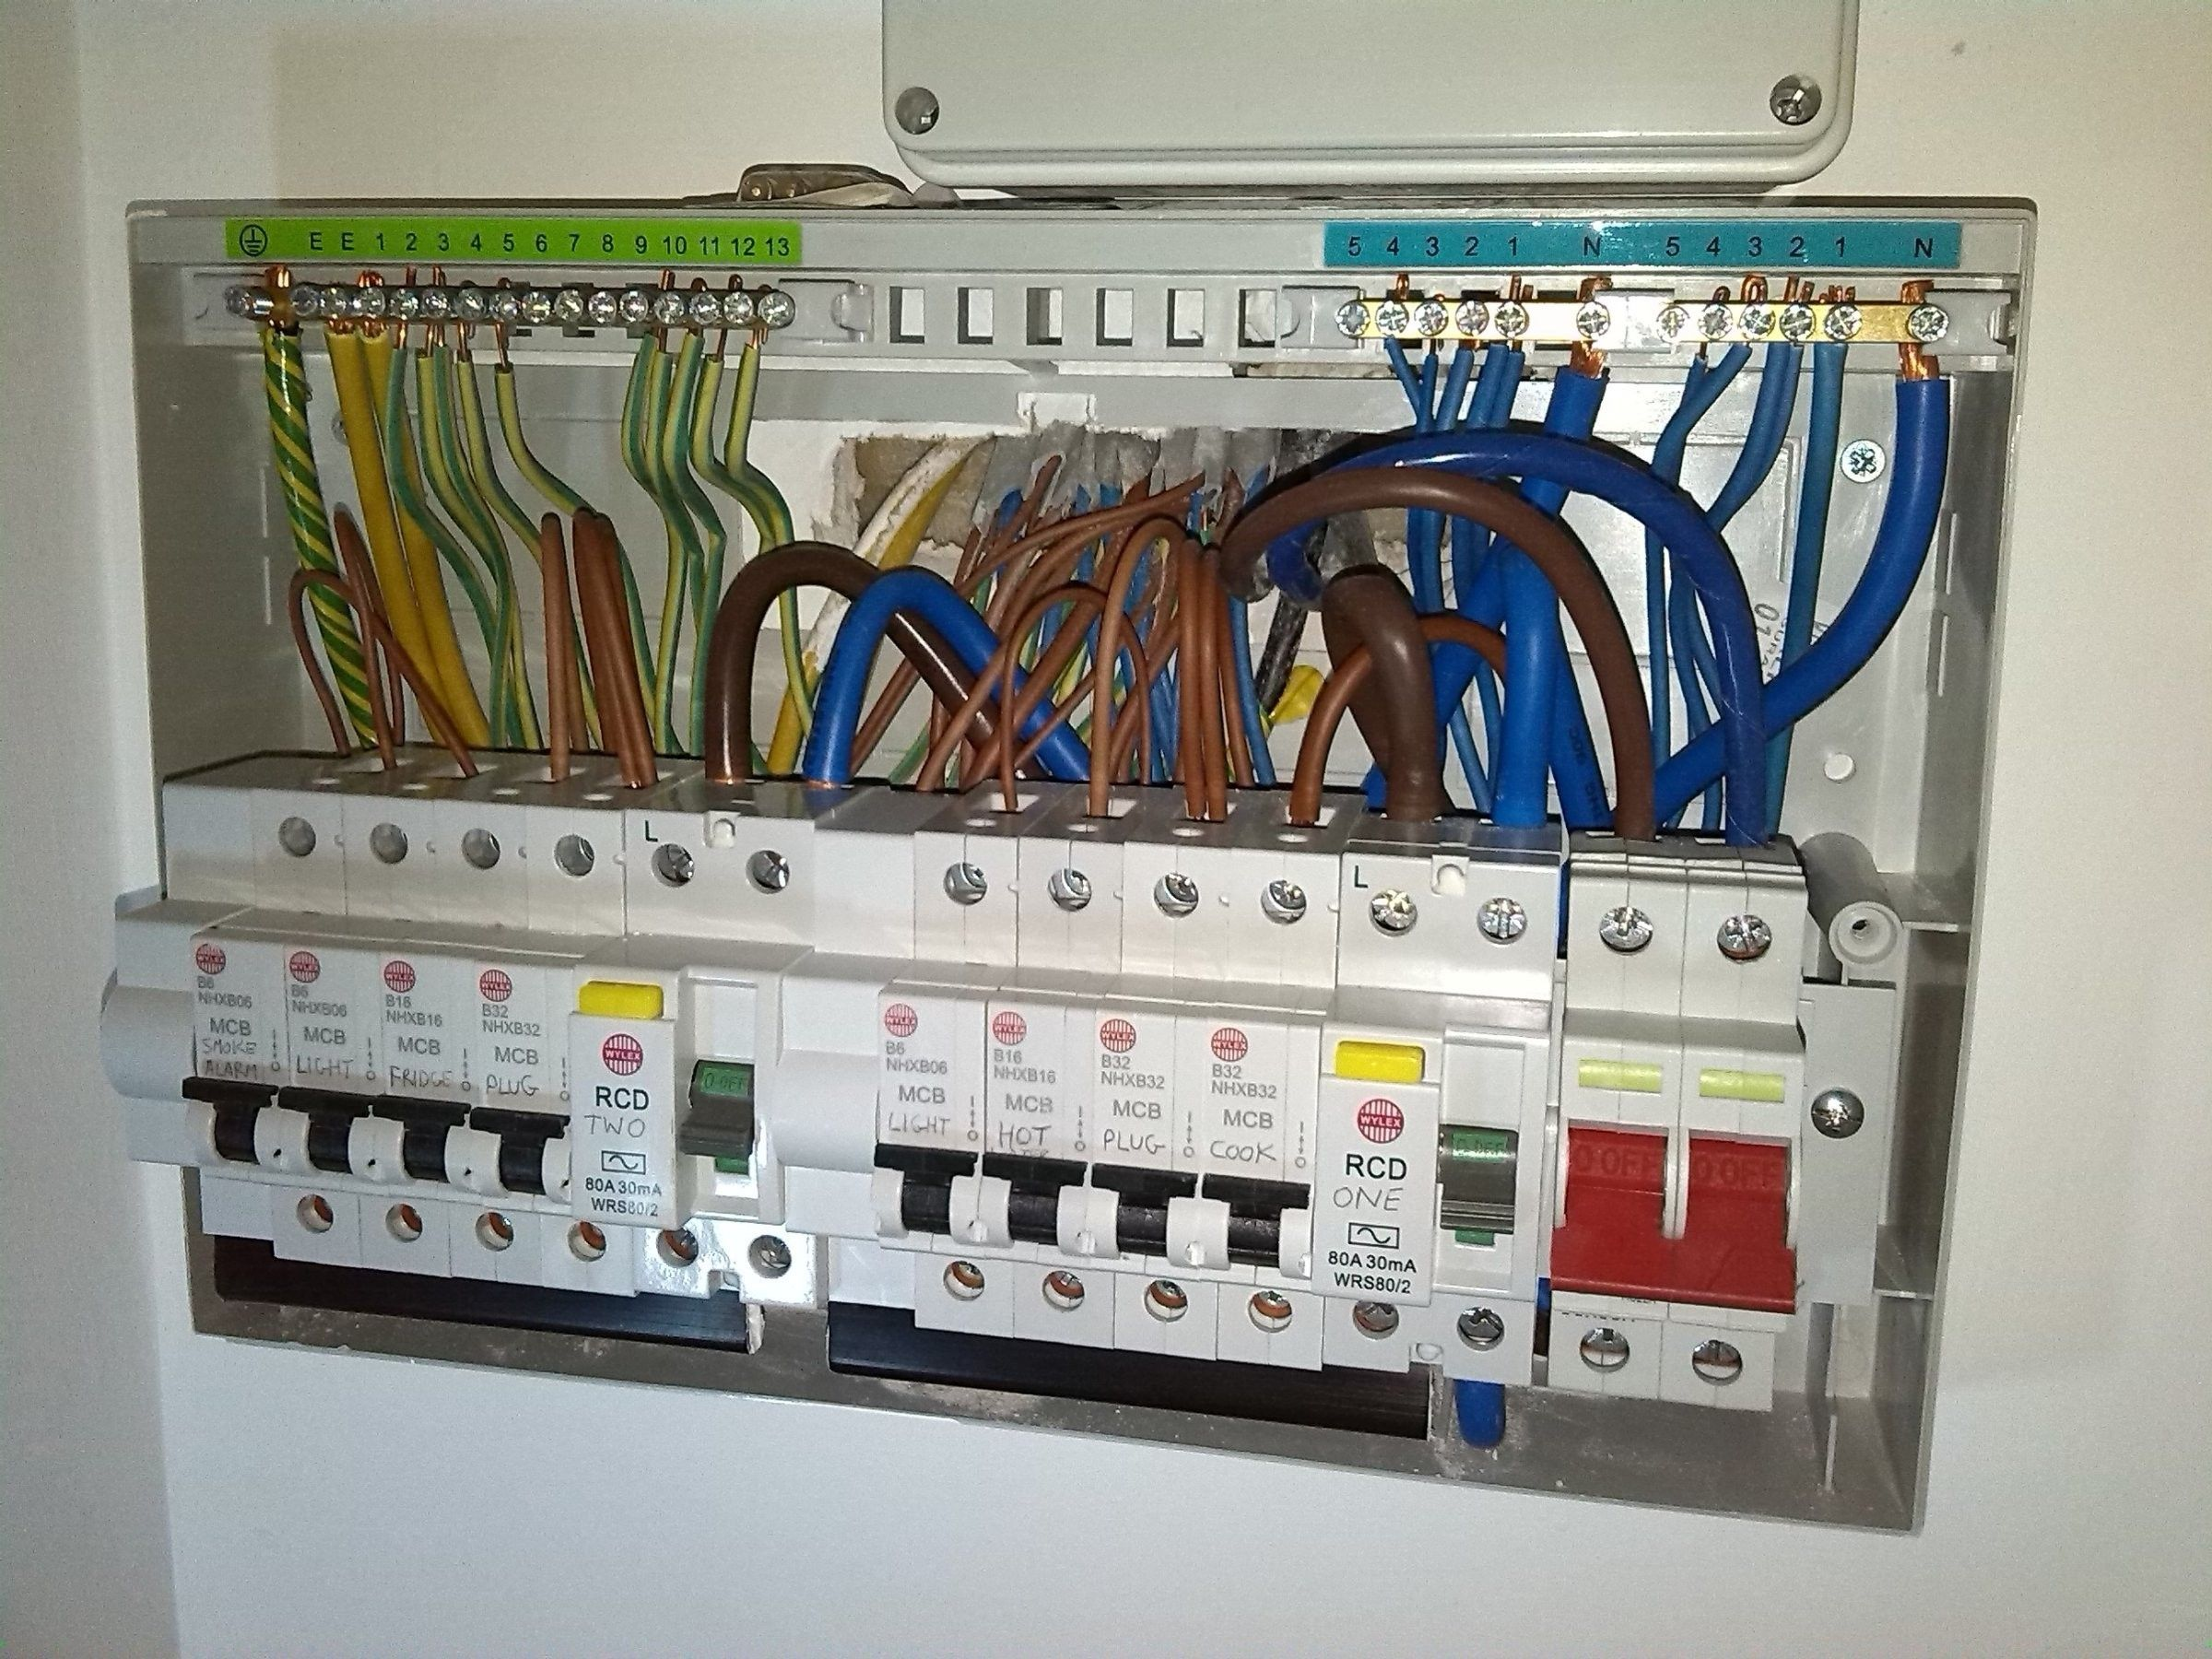 Unique Wiring Diagram For A Garage Consumer Unit Diagram Diagramtemplate Diagramsample Home Electrical Wiring The Unit Fuse Box